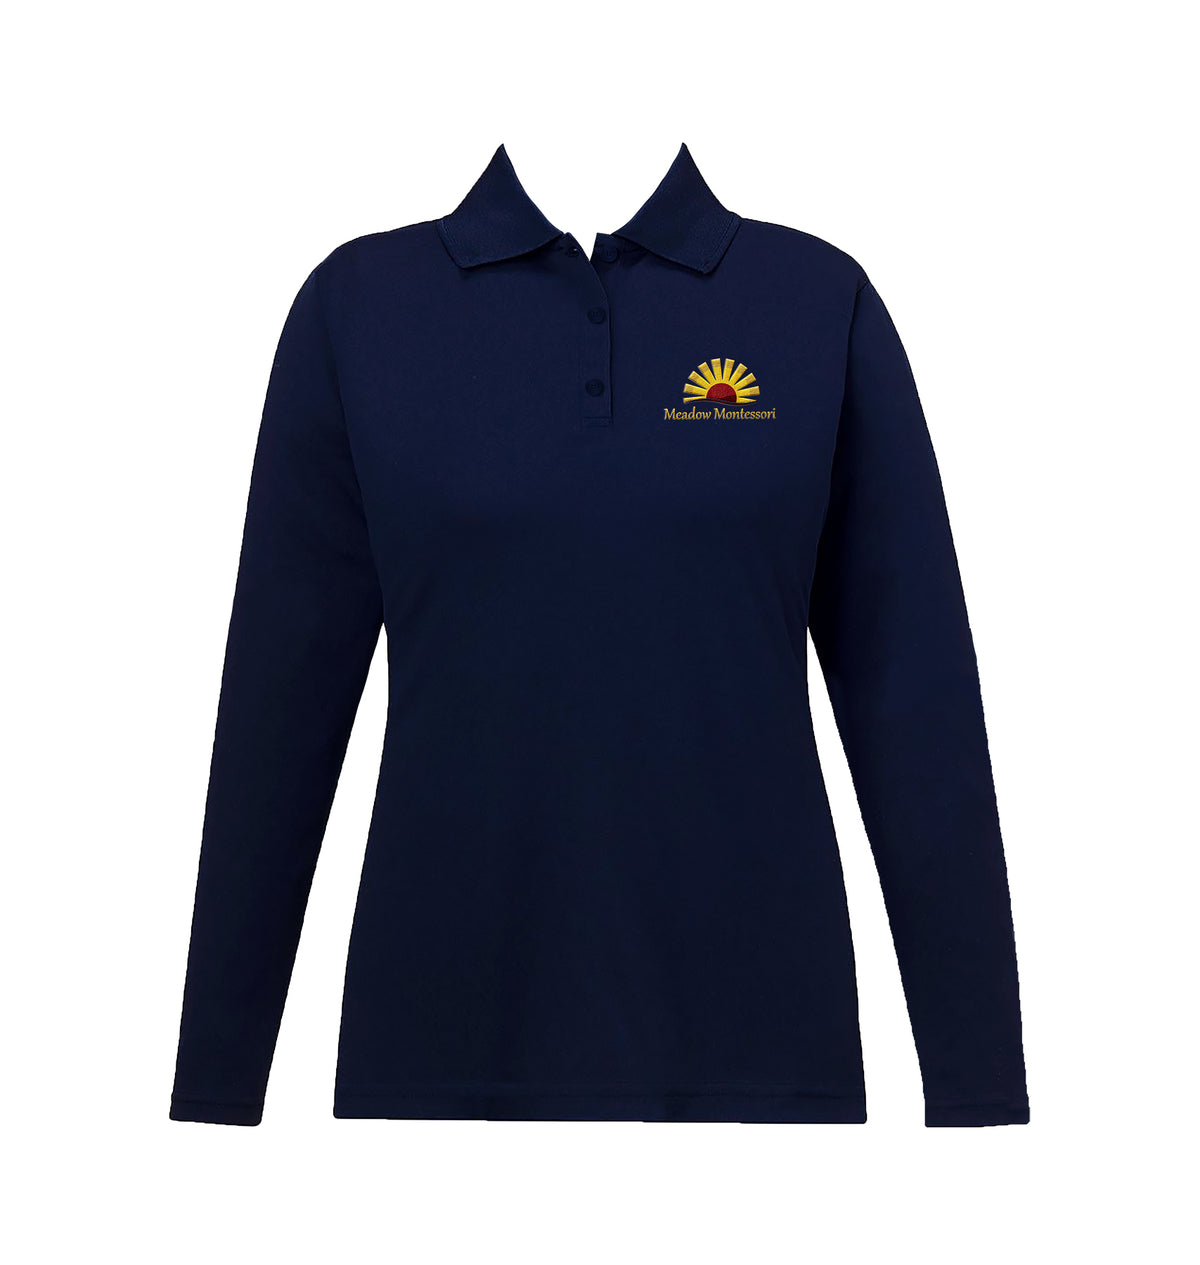 MEADOW MONTESSORI NAVY GOLF SHIRT, GIRLS, LONG SLEEVE, YOUTH